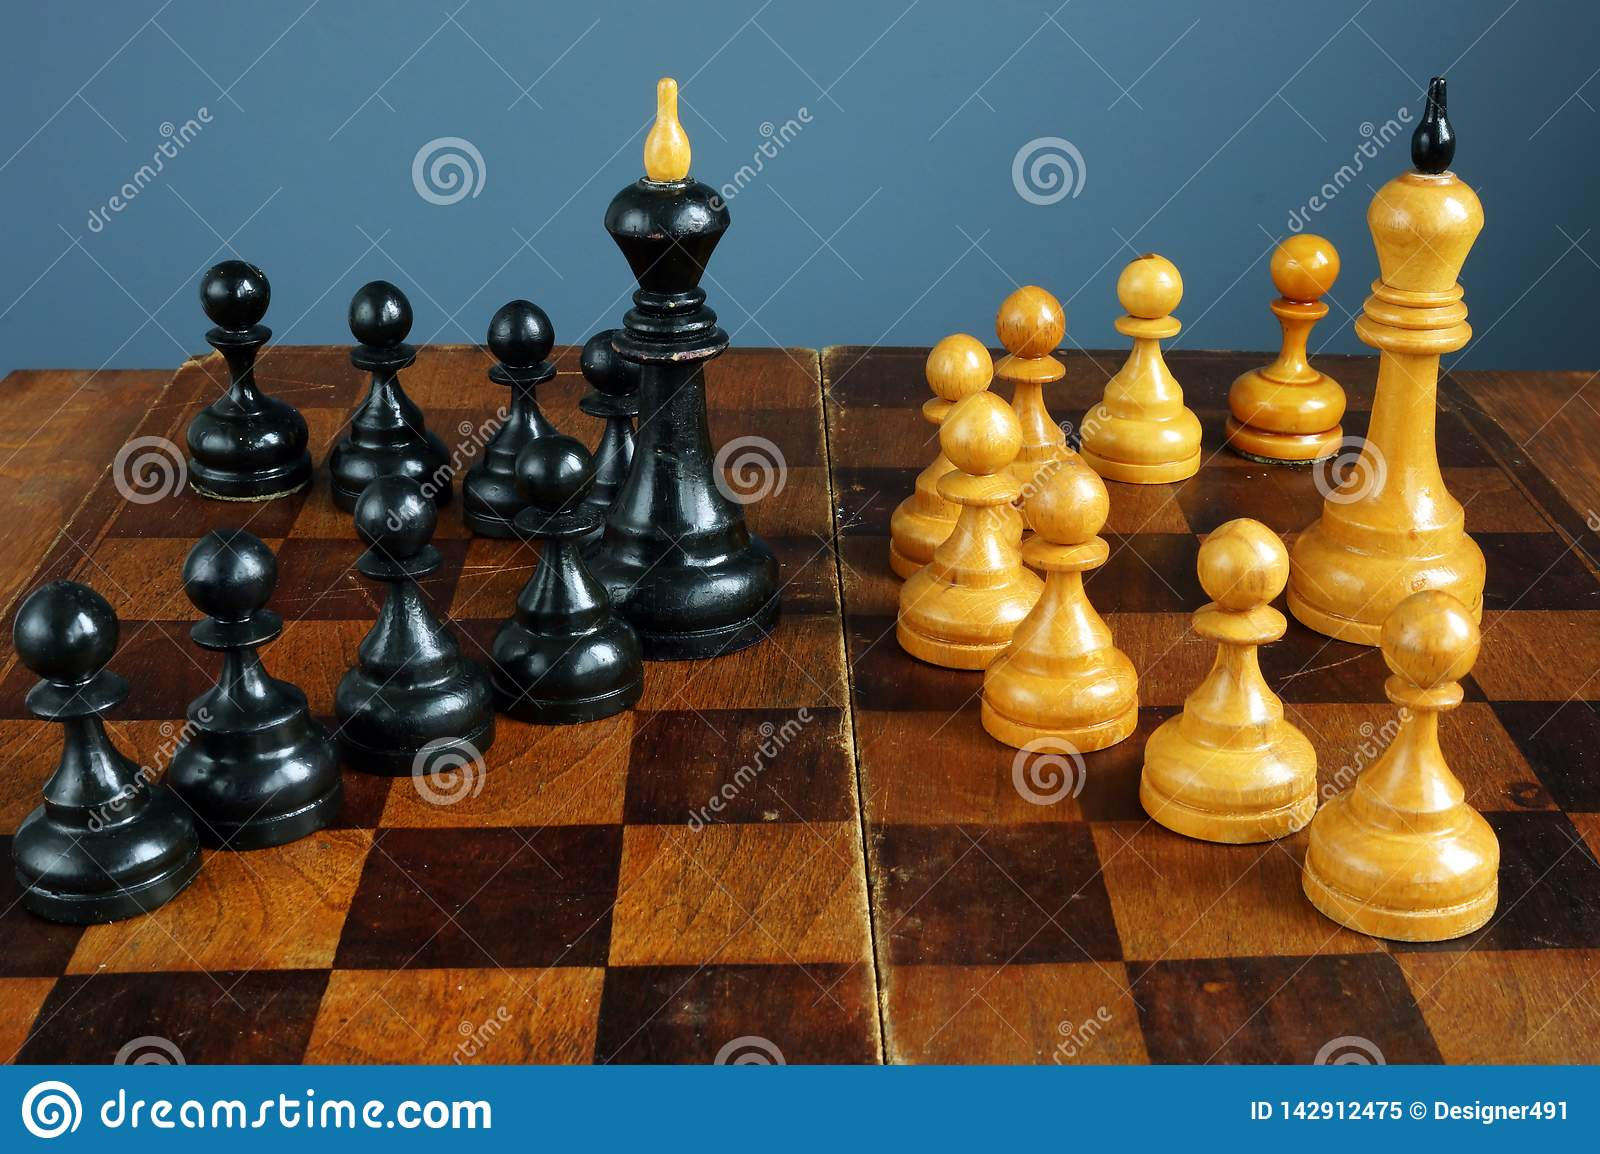 Leader vs boss or manager. Chess kings and pawns on desk